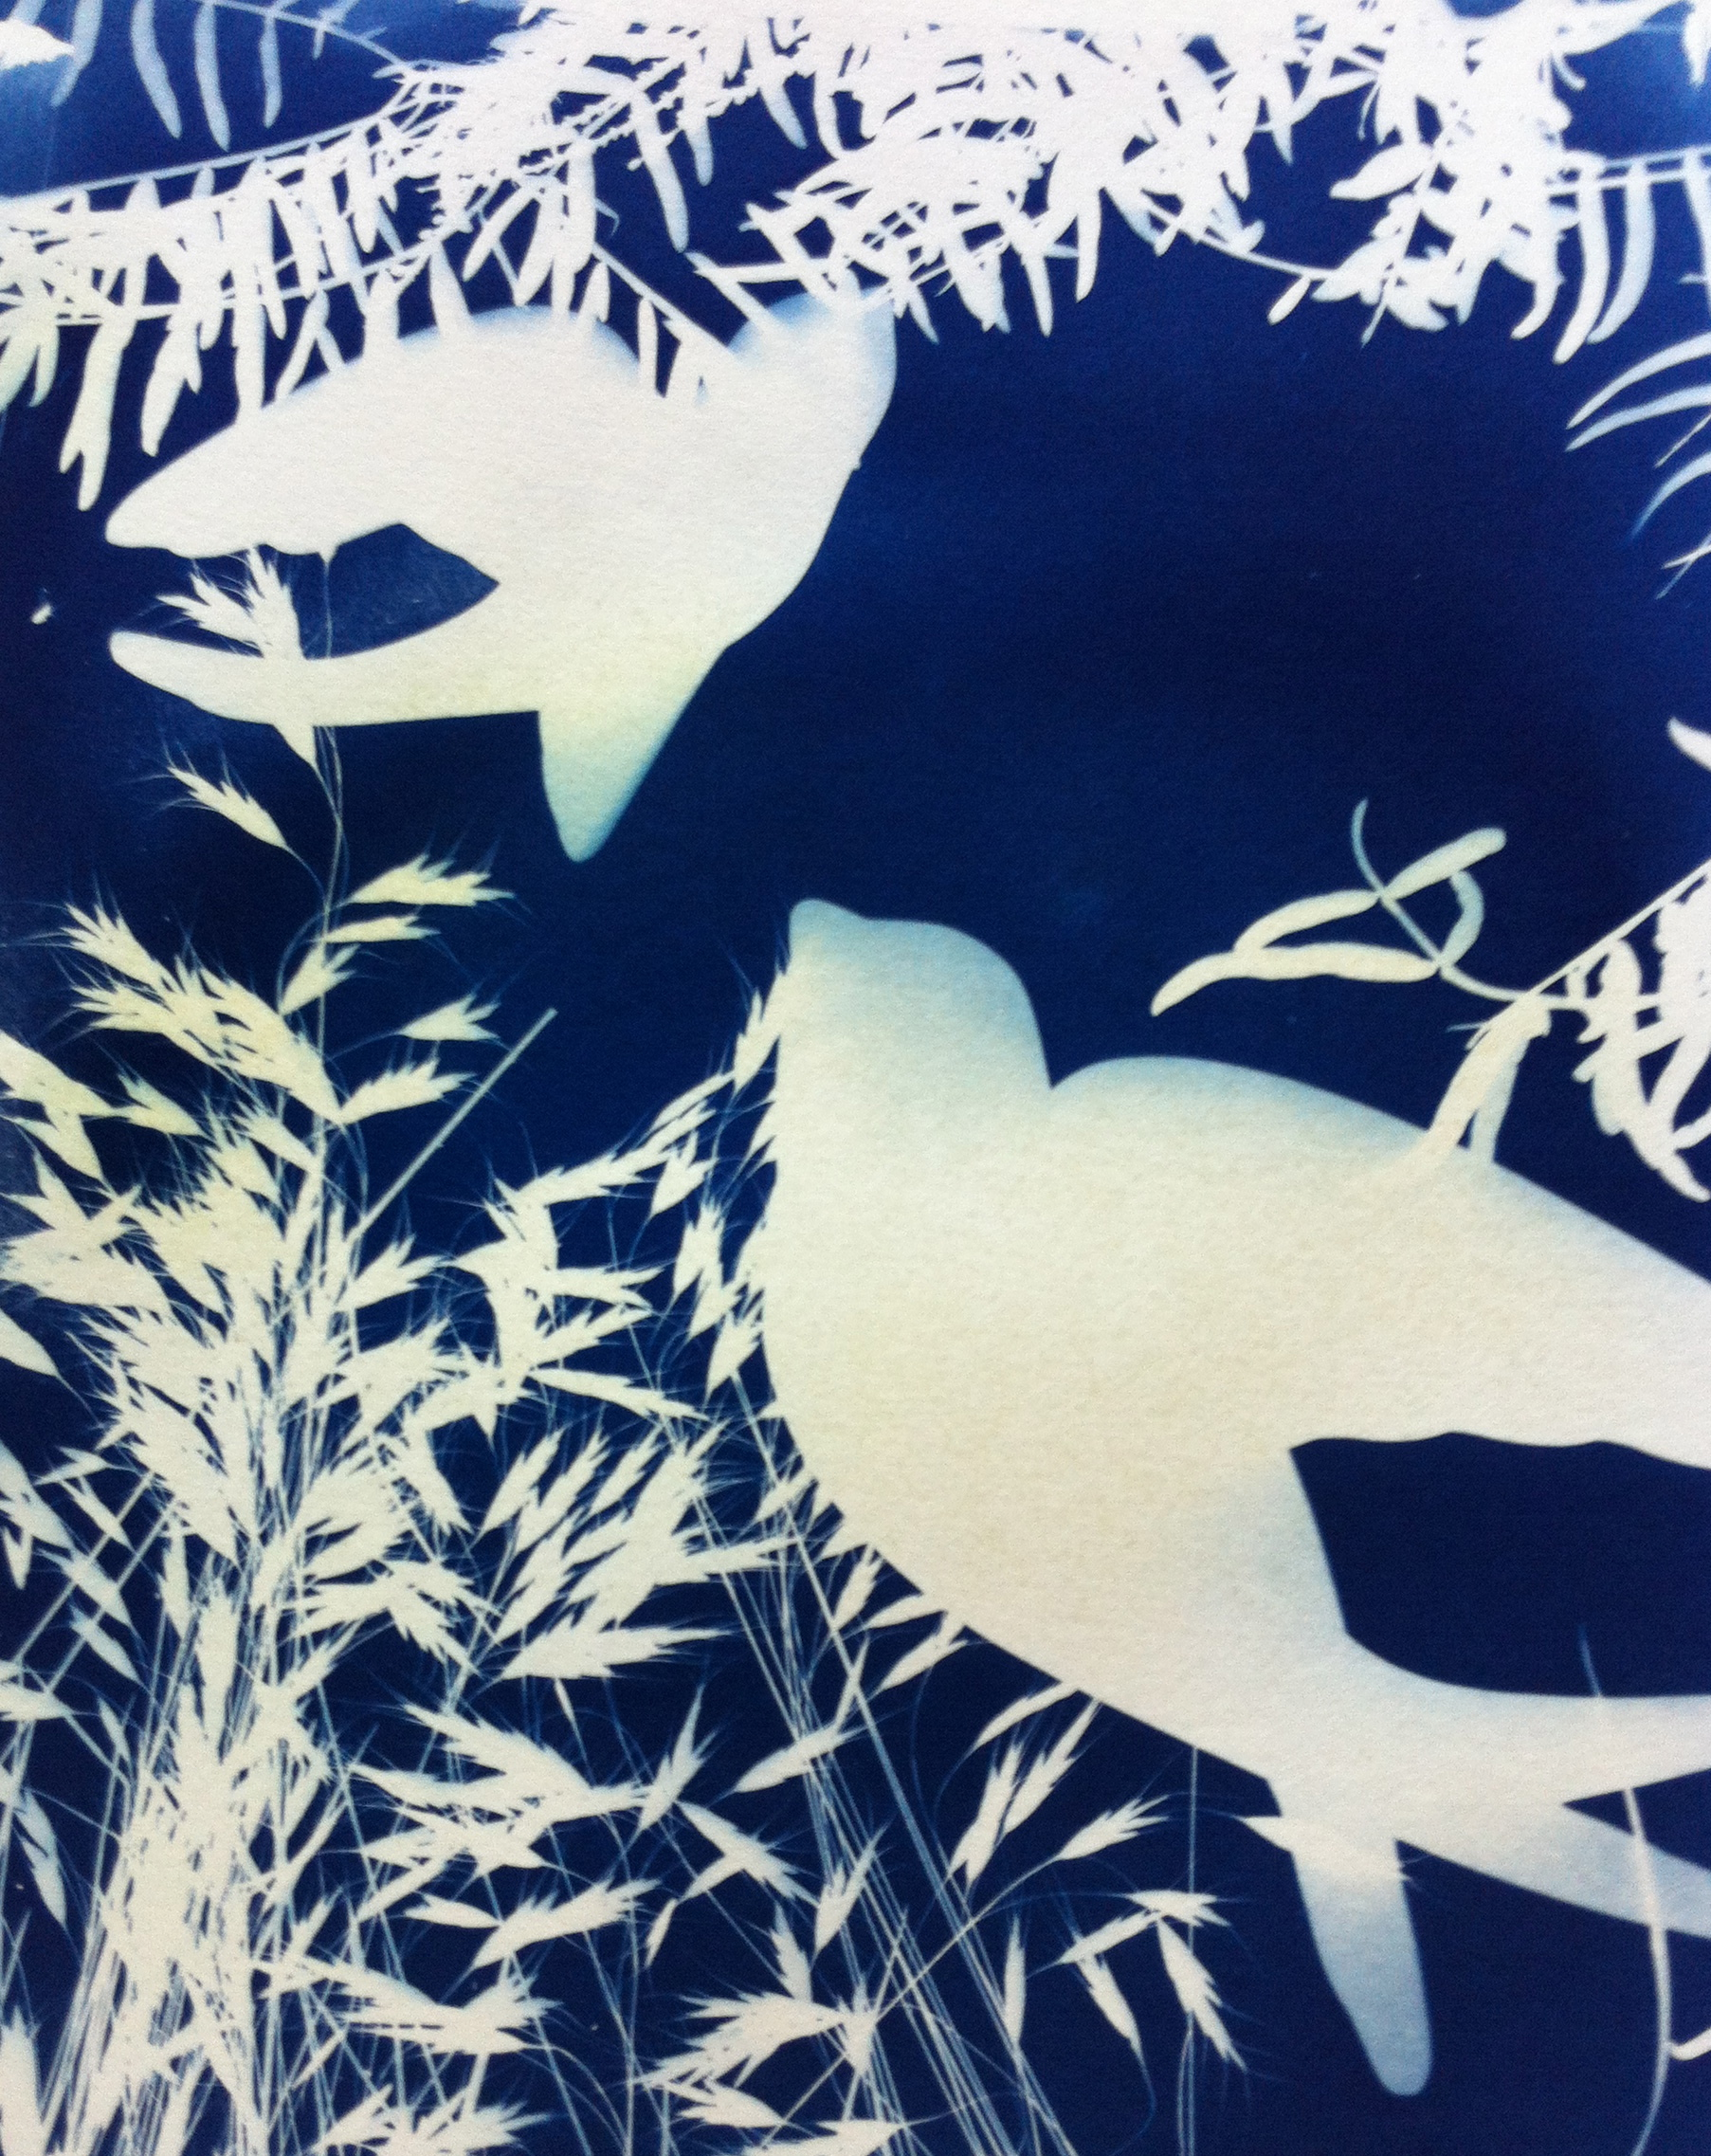 Flight   12x12 cyanotype